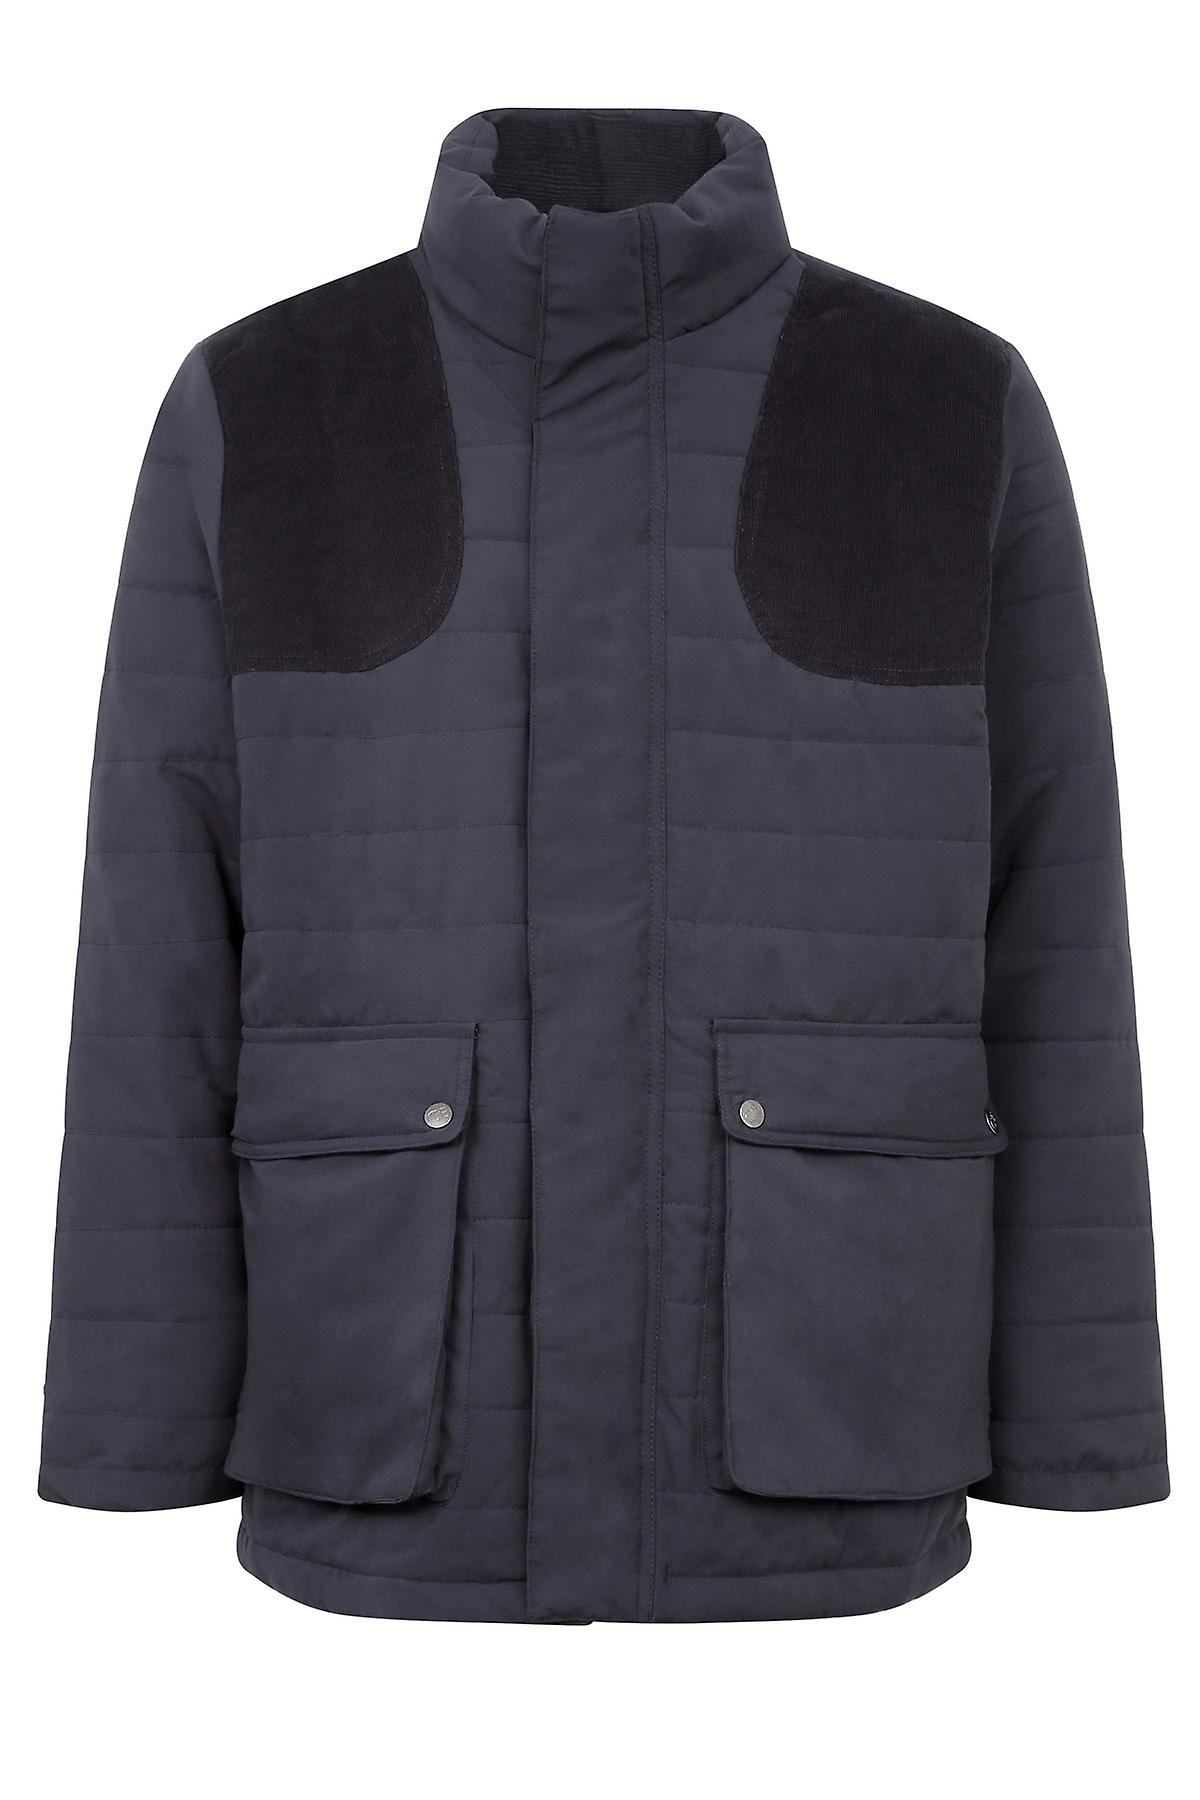 Champion Country Estate Range Stowe Pour des hommes Soft Touch Quilted Coat